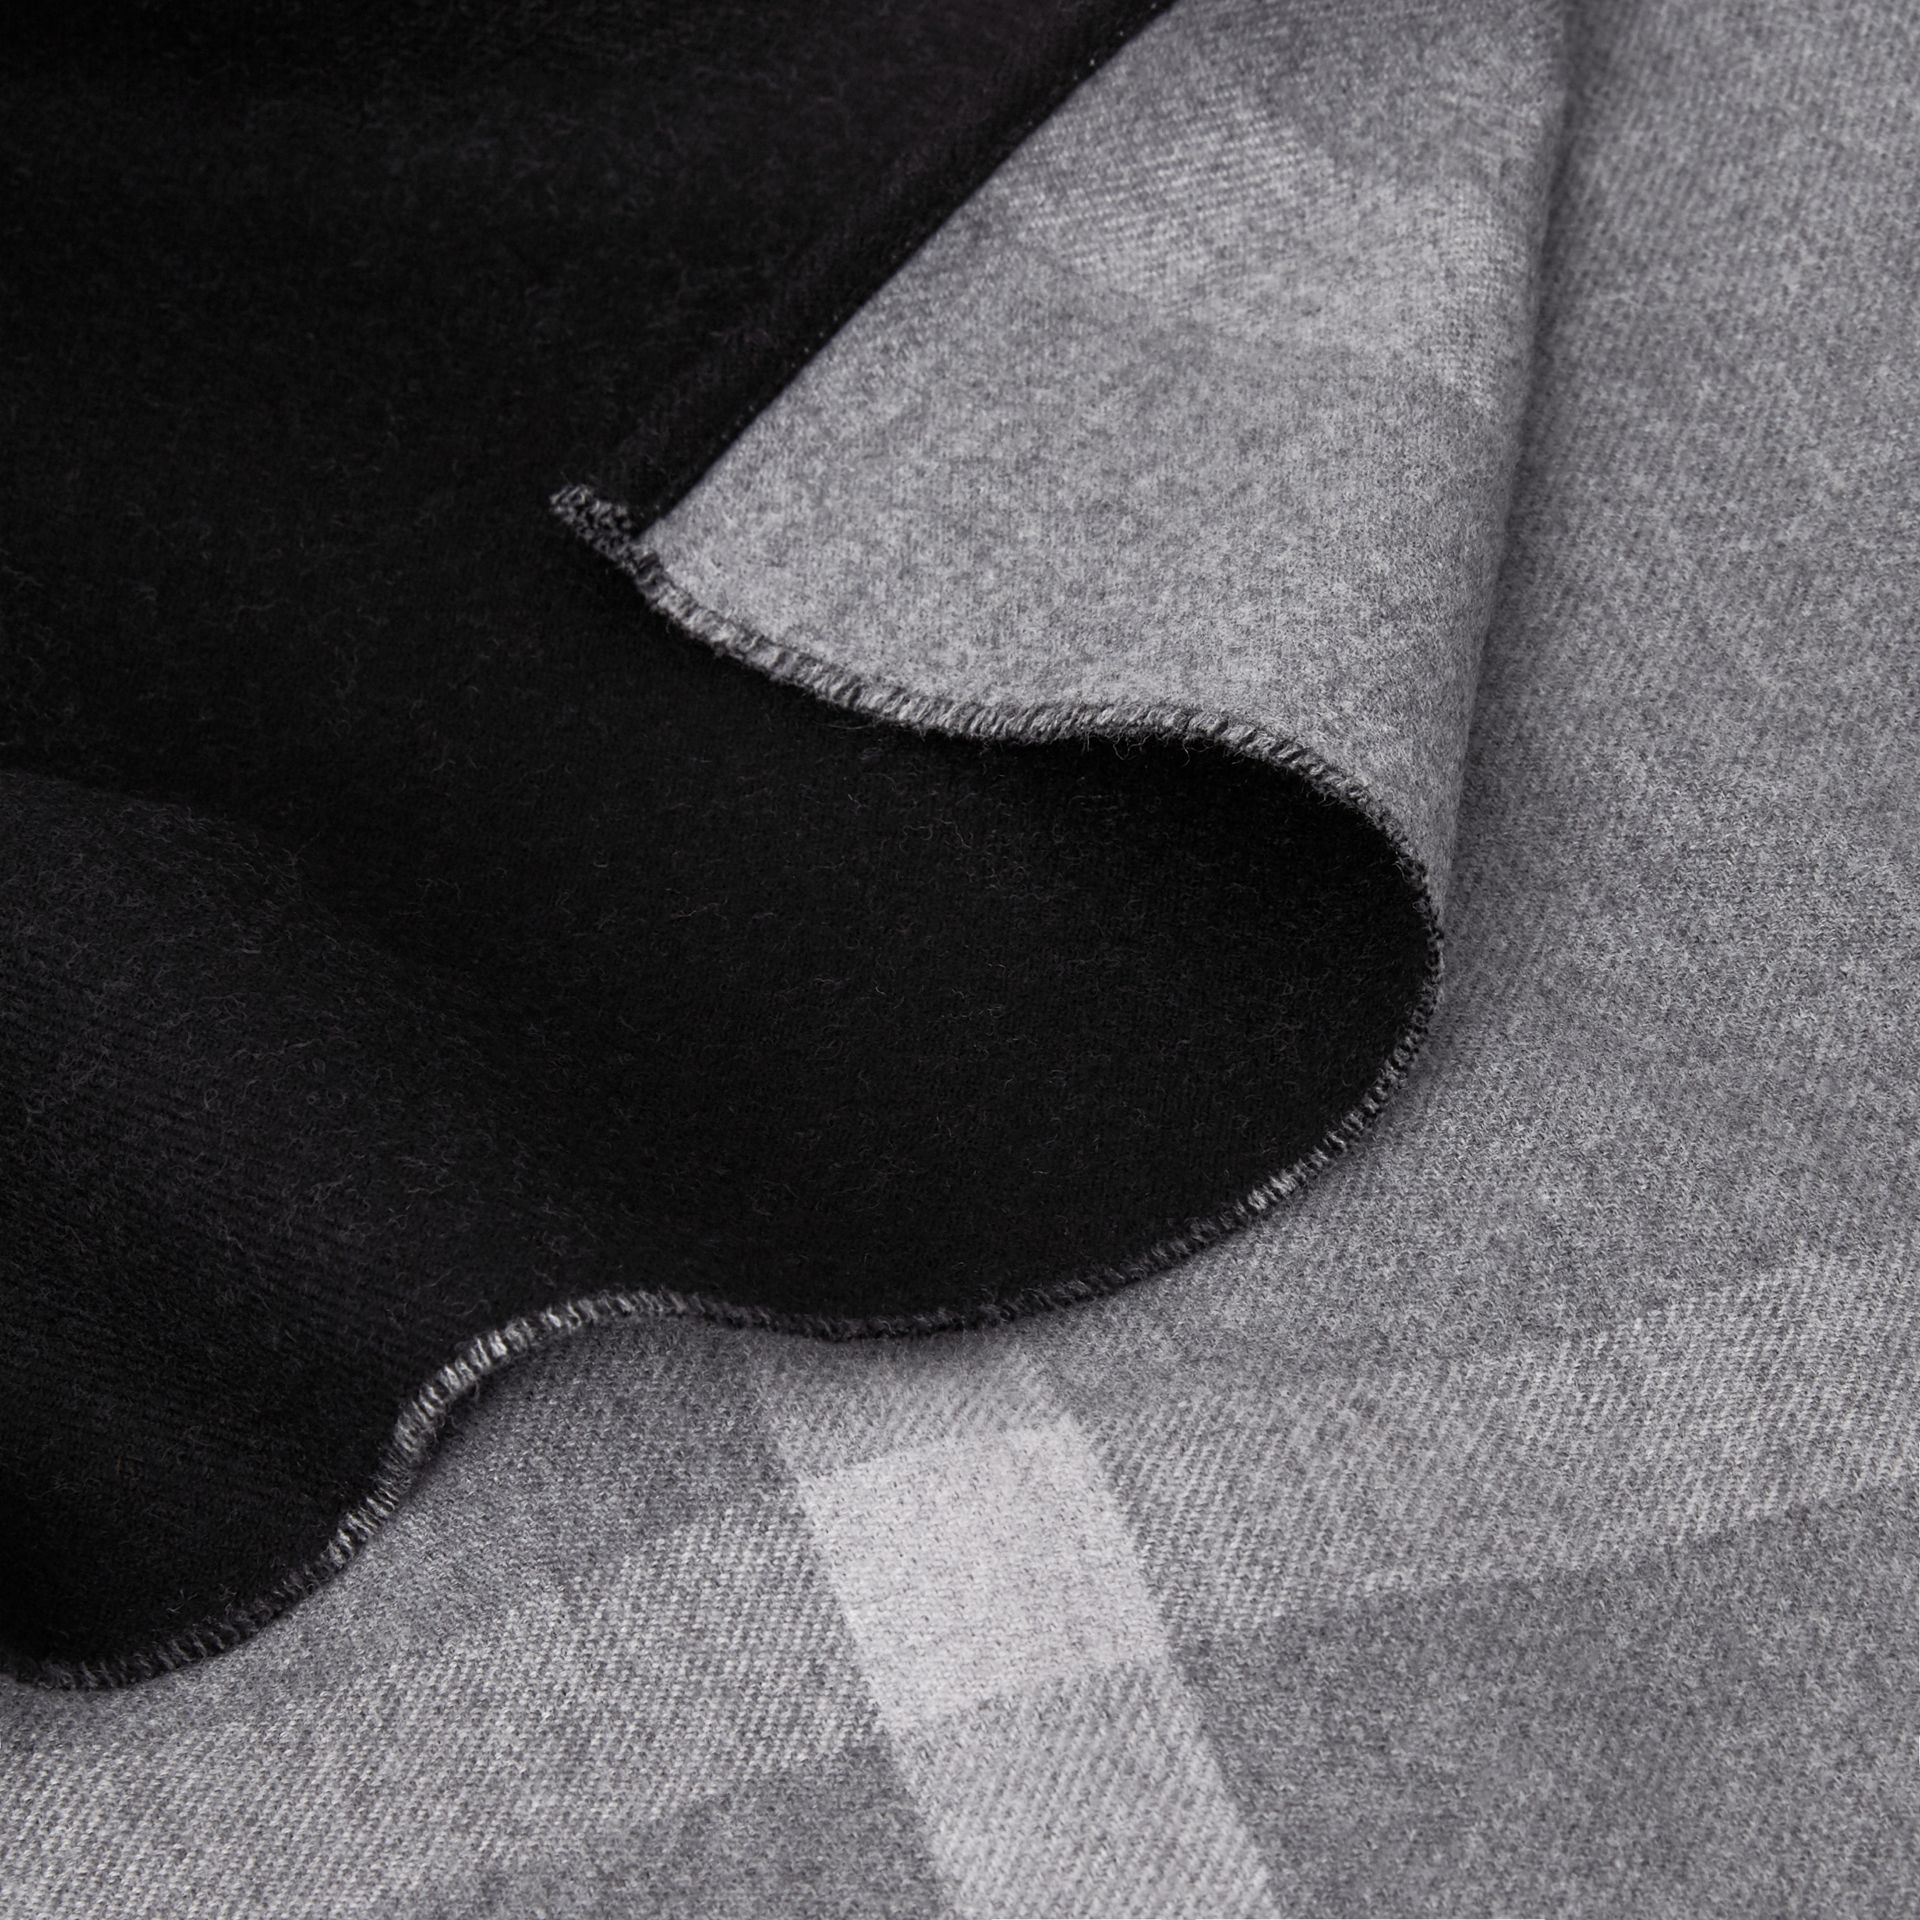 Reversible Check Merino Wool Poncho in Charcoal - Women | Burberry - gallery image 1